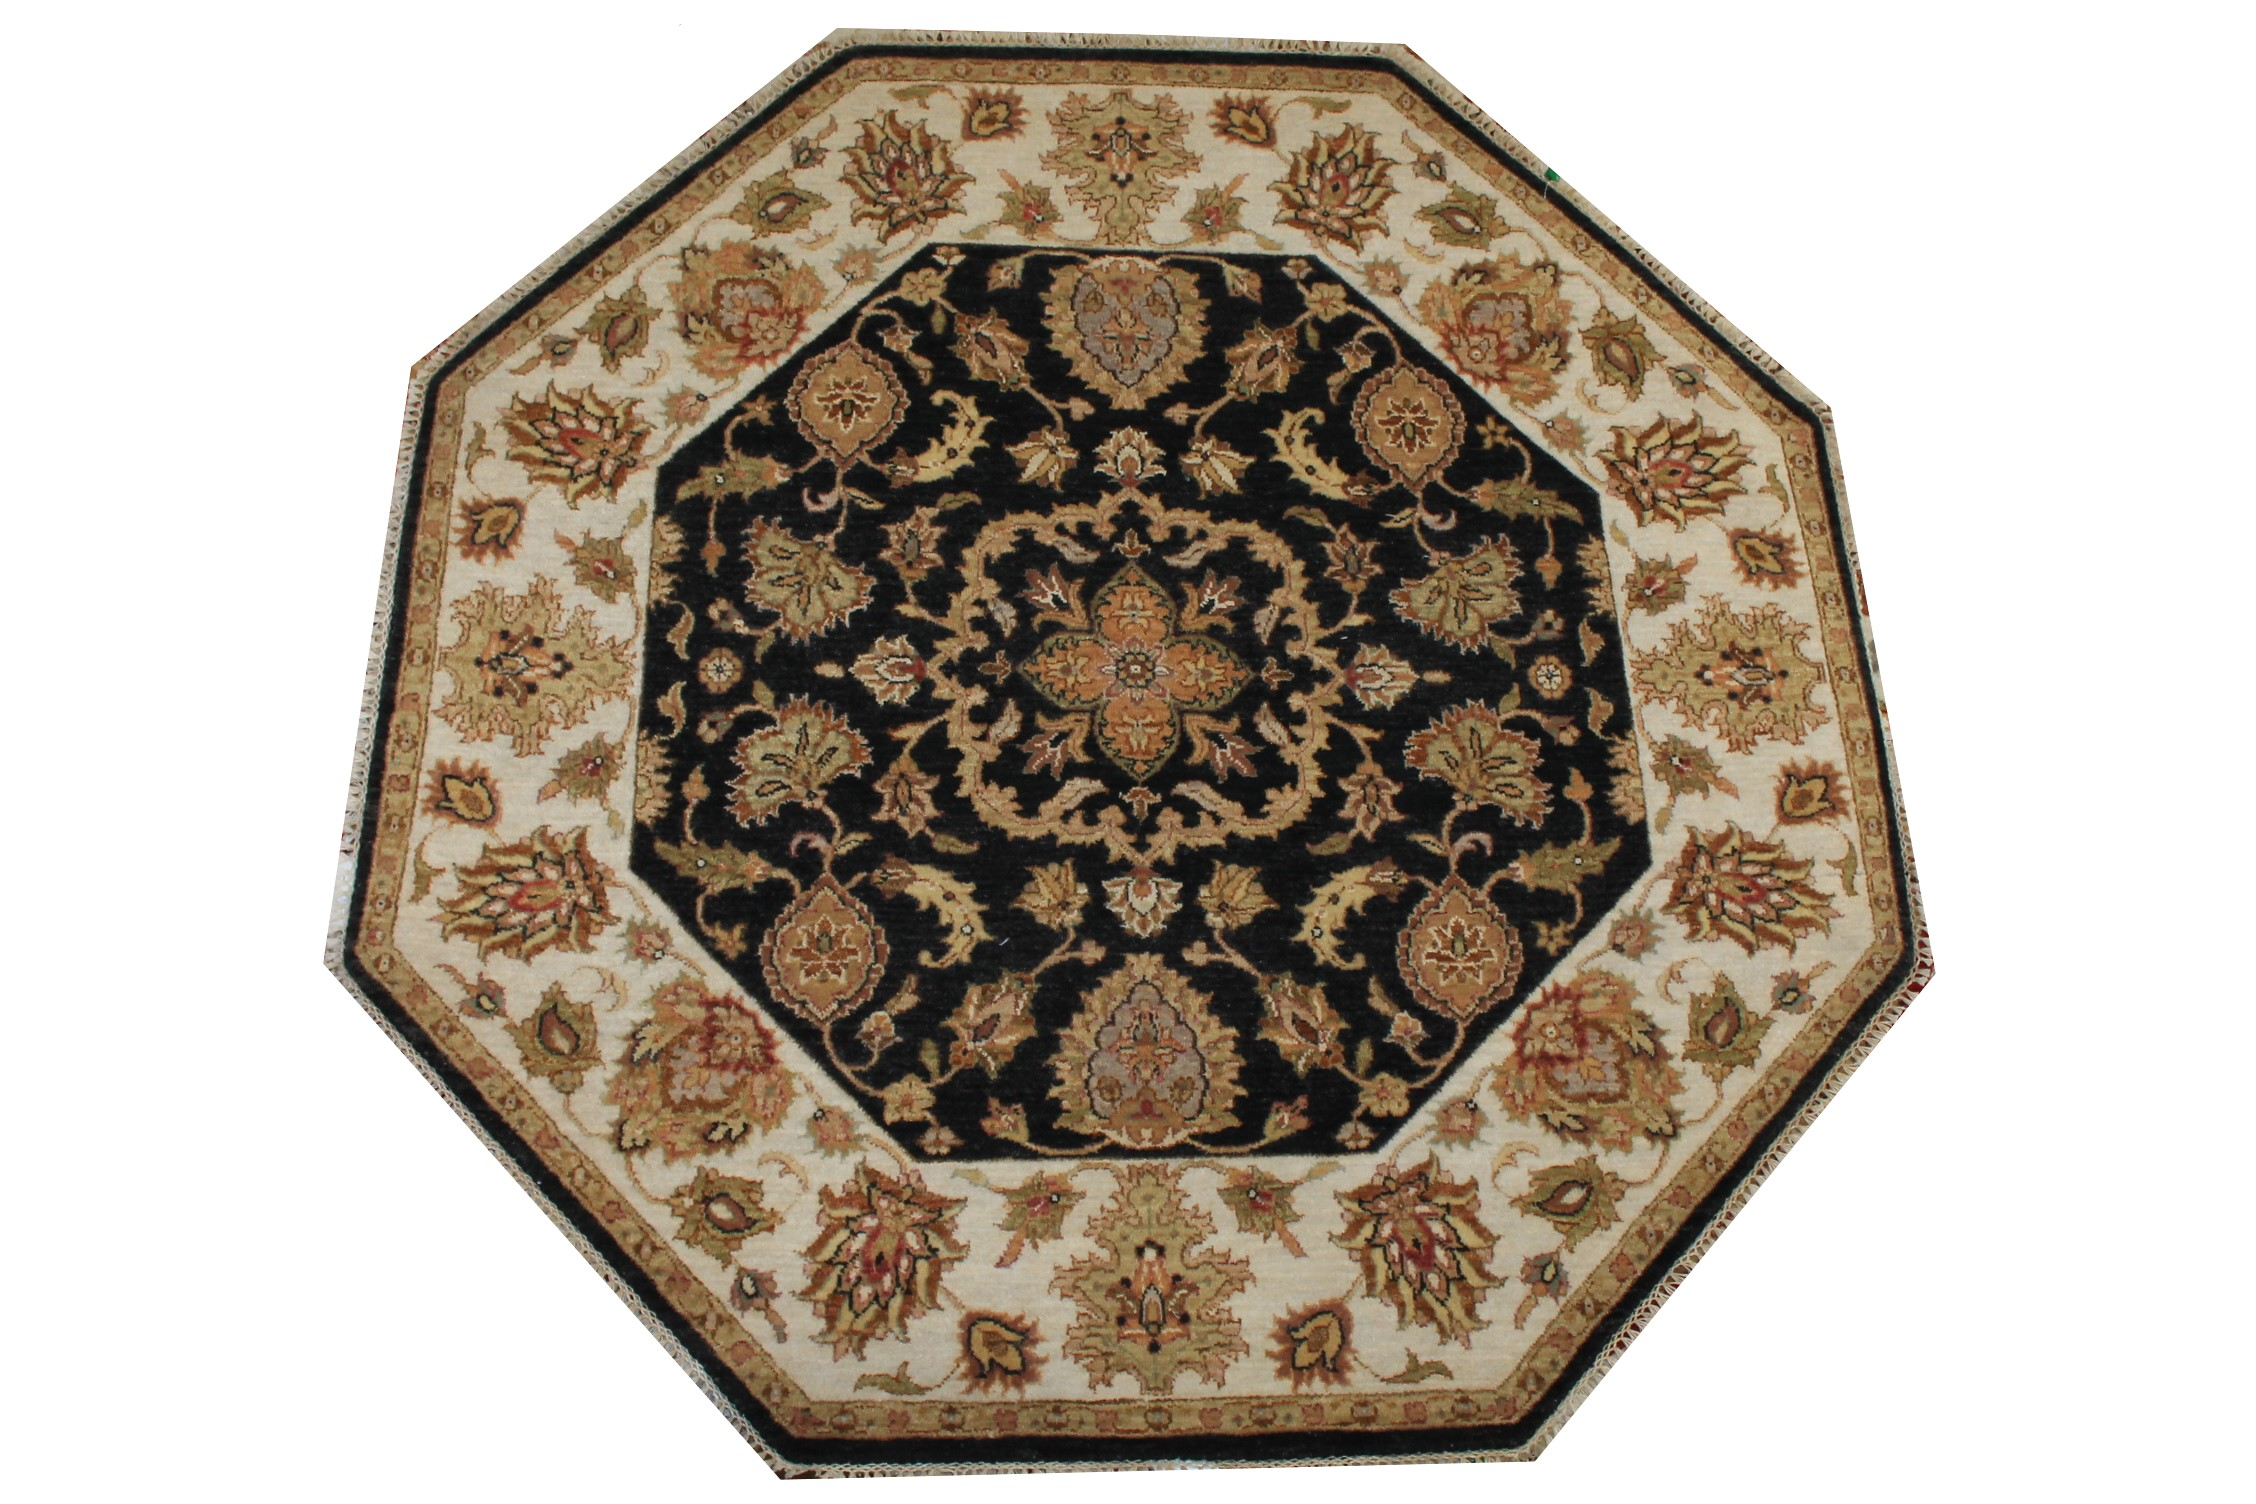 5 ft. Round & Square Traditional Hand Knotted Wool Area Rug - MR024249